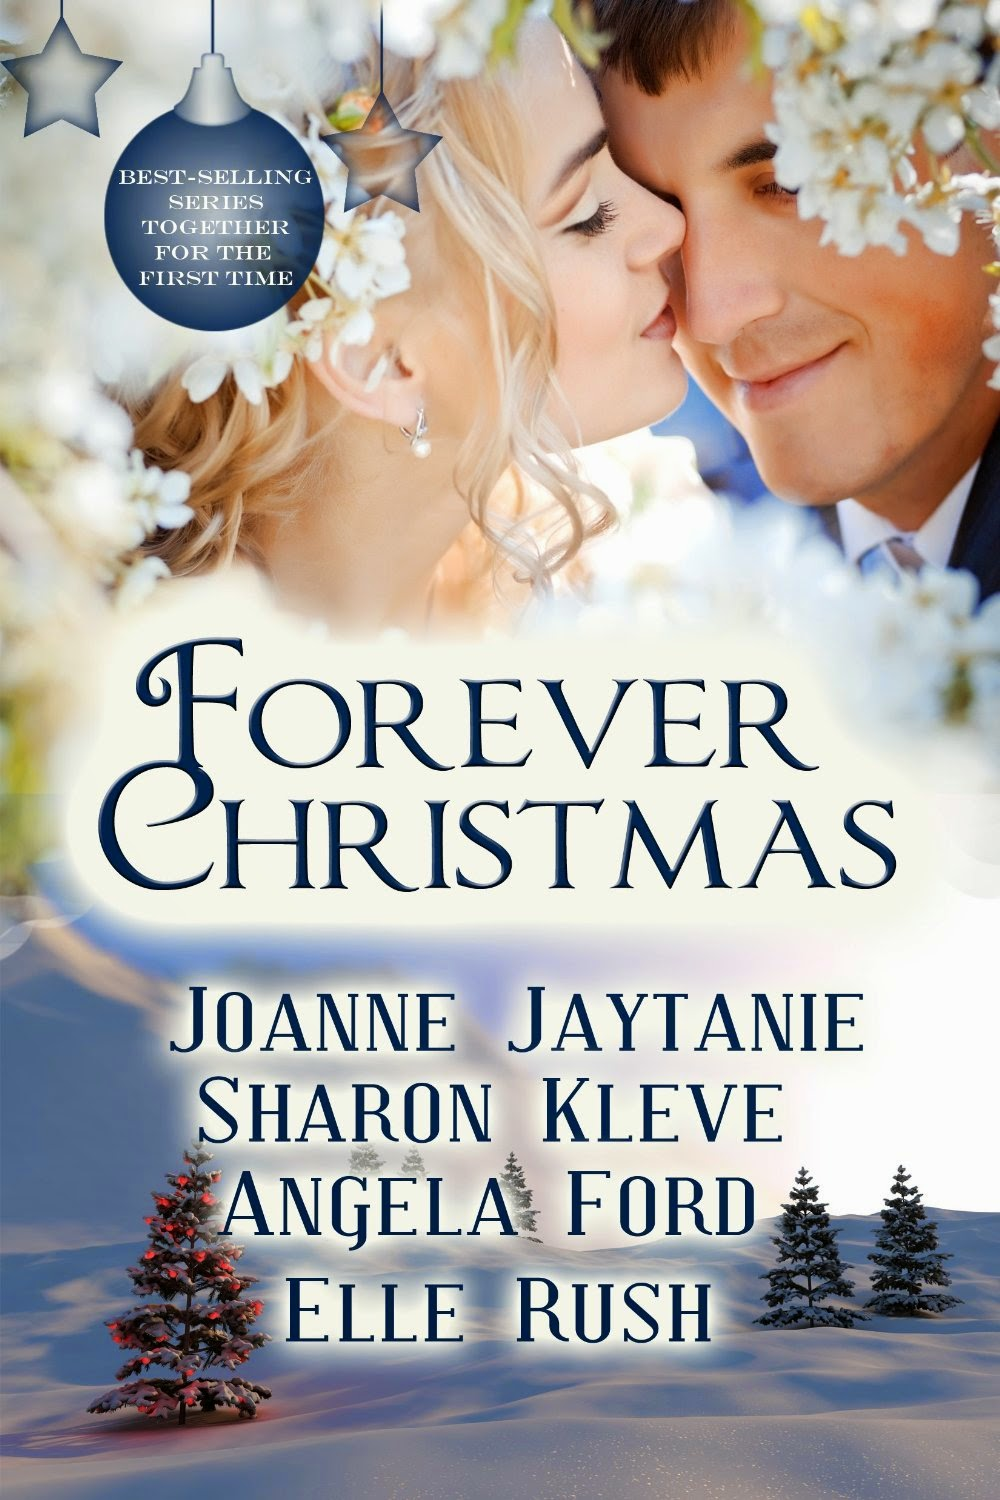 http://www.amazon.com/Forever-Christmas-Reflections-Wreath-Kisses-ebook/dp/B00PKQ4E7Y/ref=sr_1_3?s=books&ie=UTF8&qid=1421614182&sr=1-3&keywords=sharon+kleve